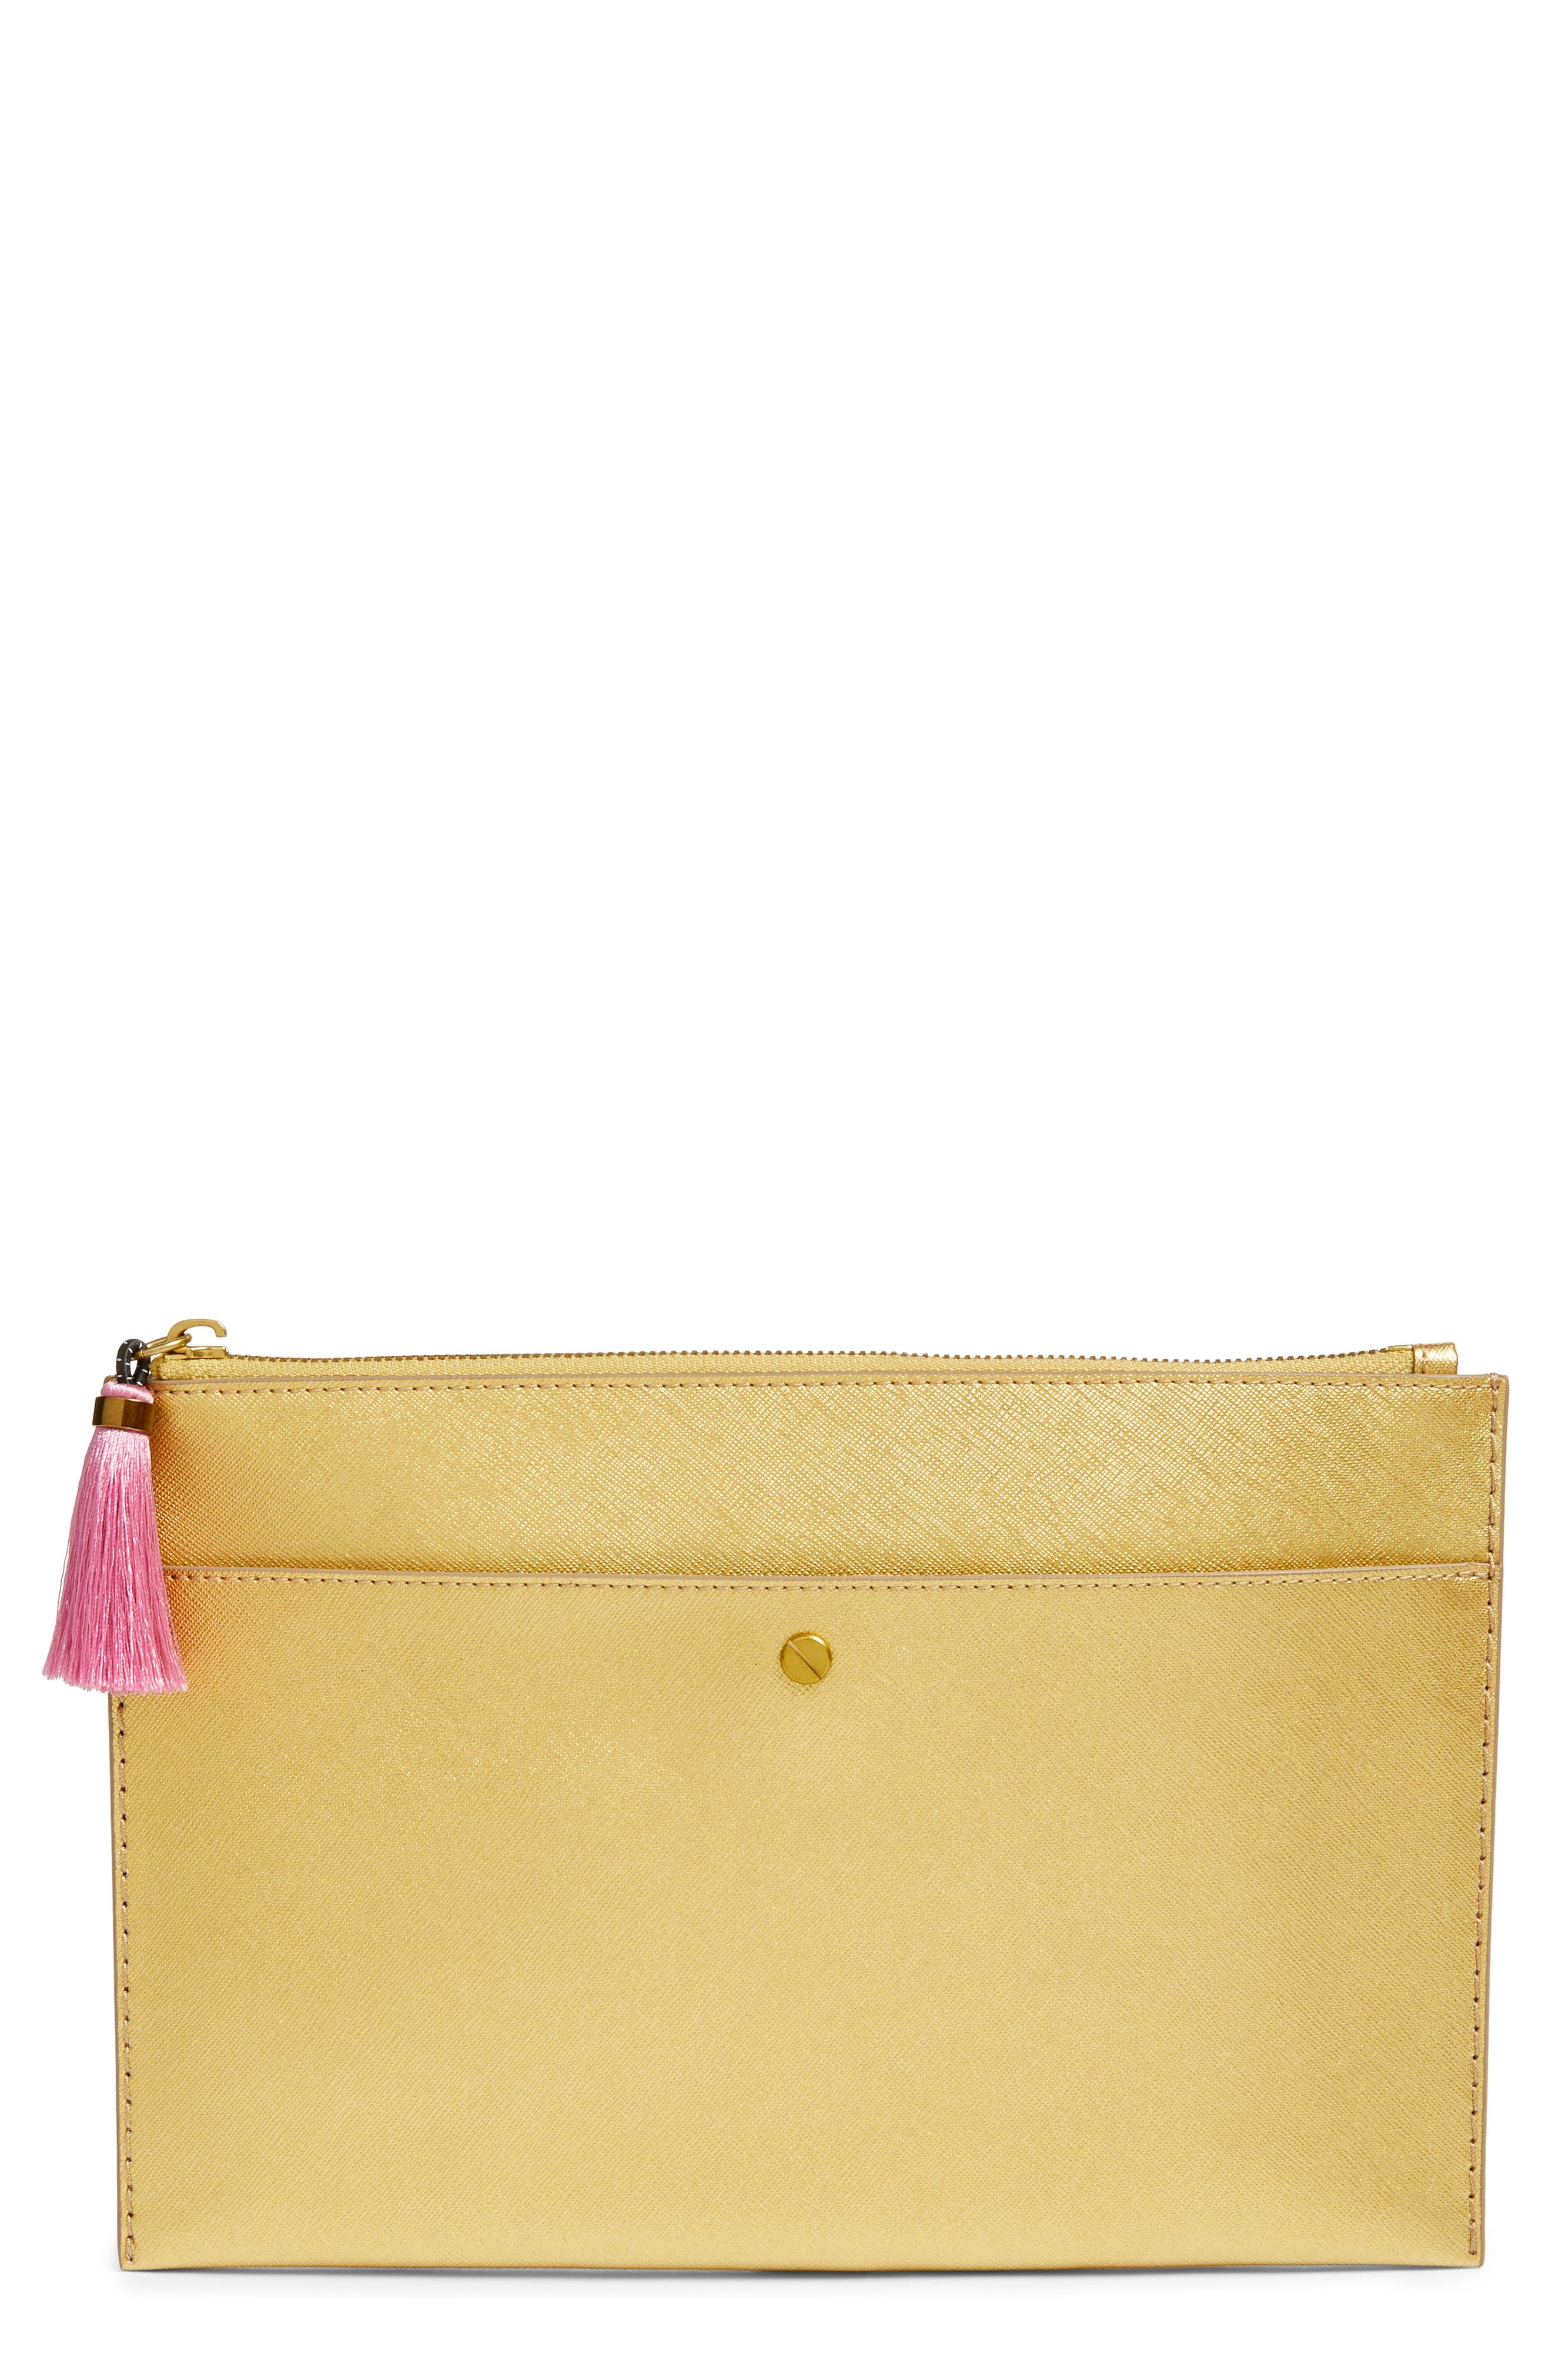 Alternate Image 1 Selected - J.Crew Large Saffiano Leather Pouch